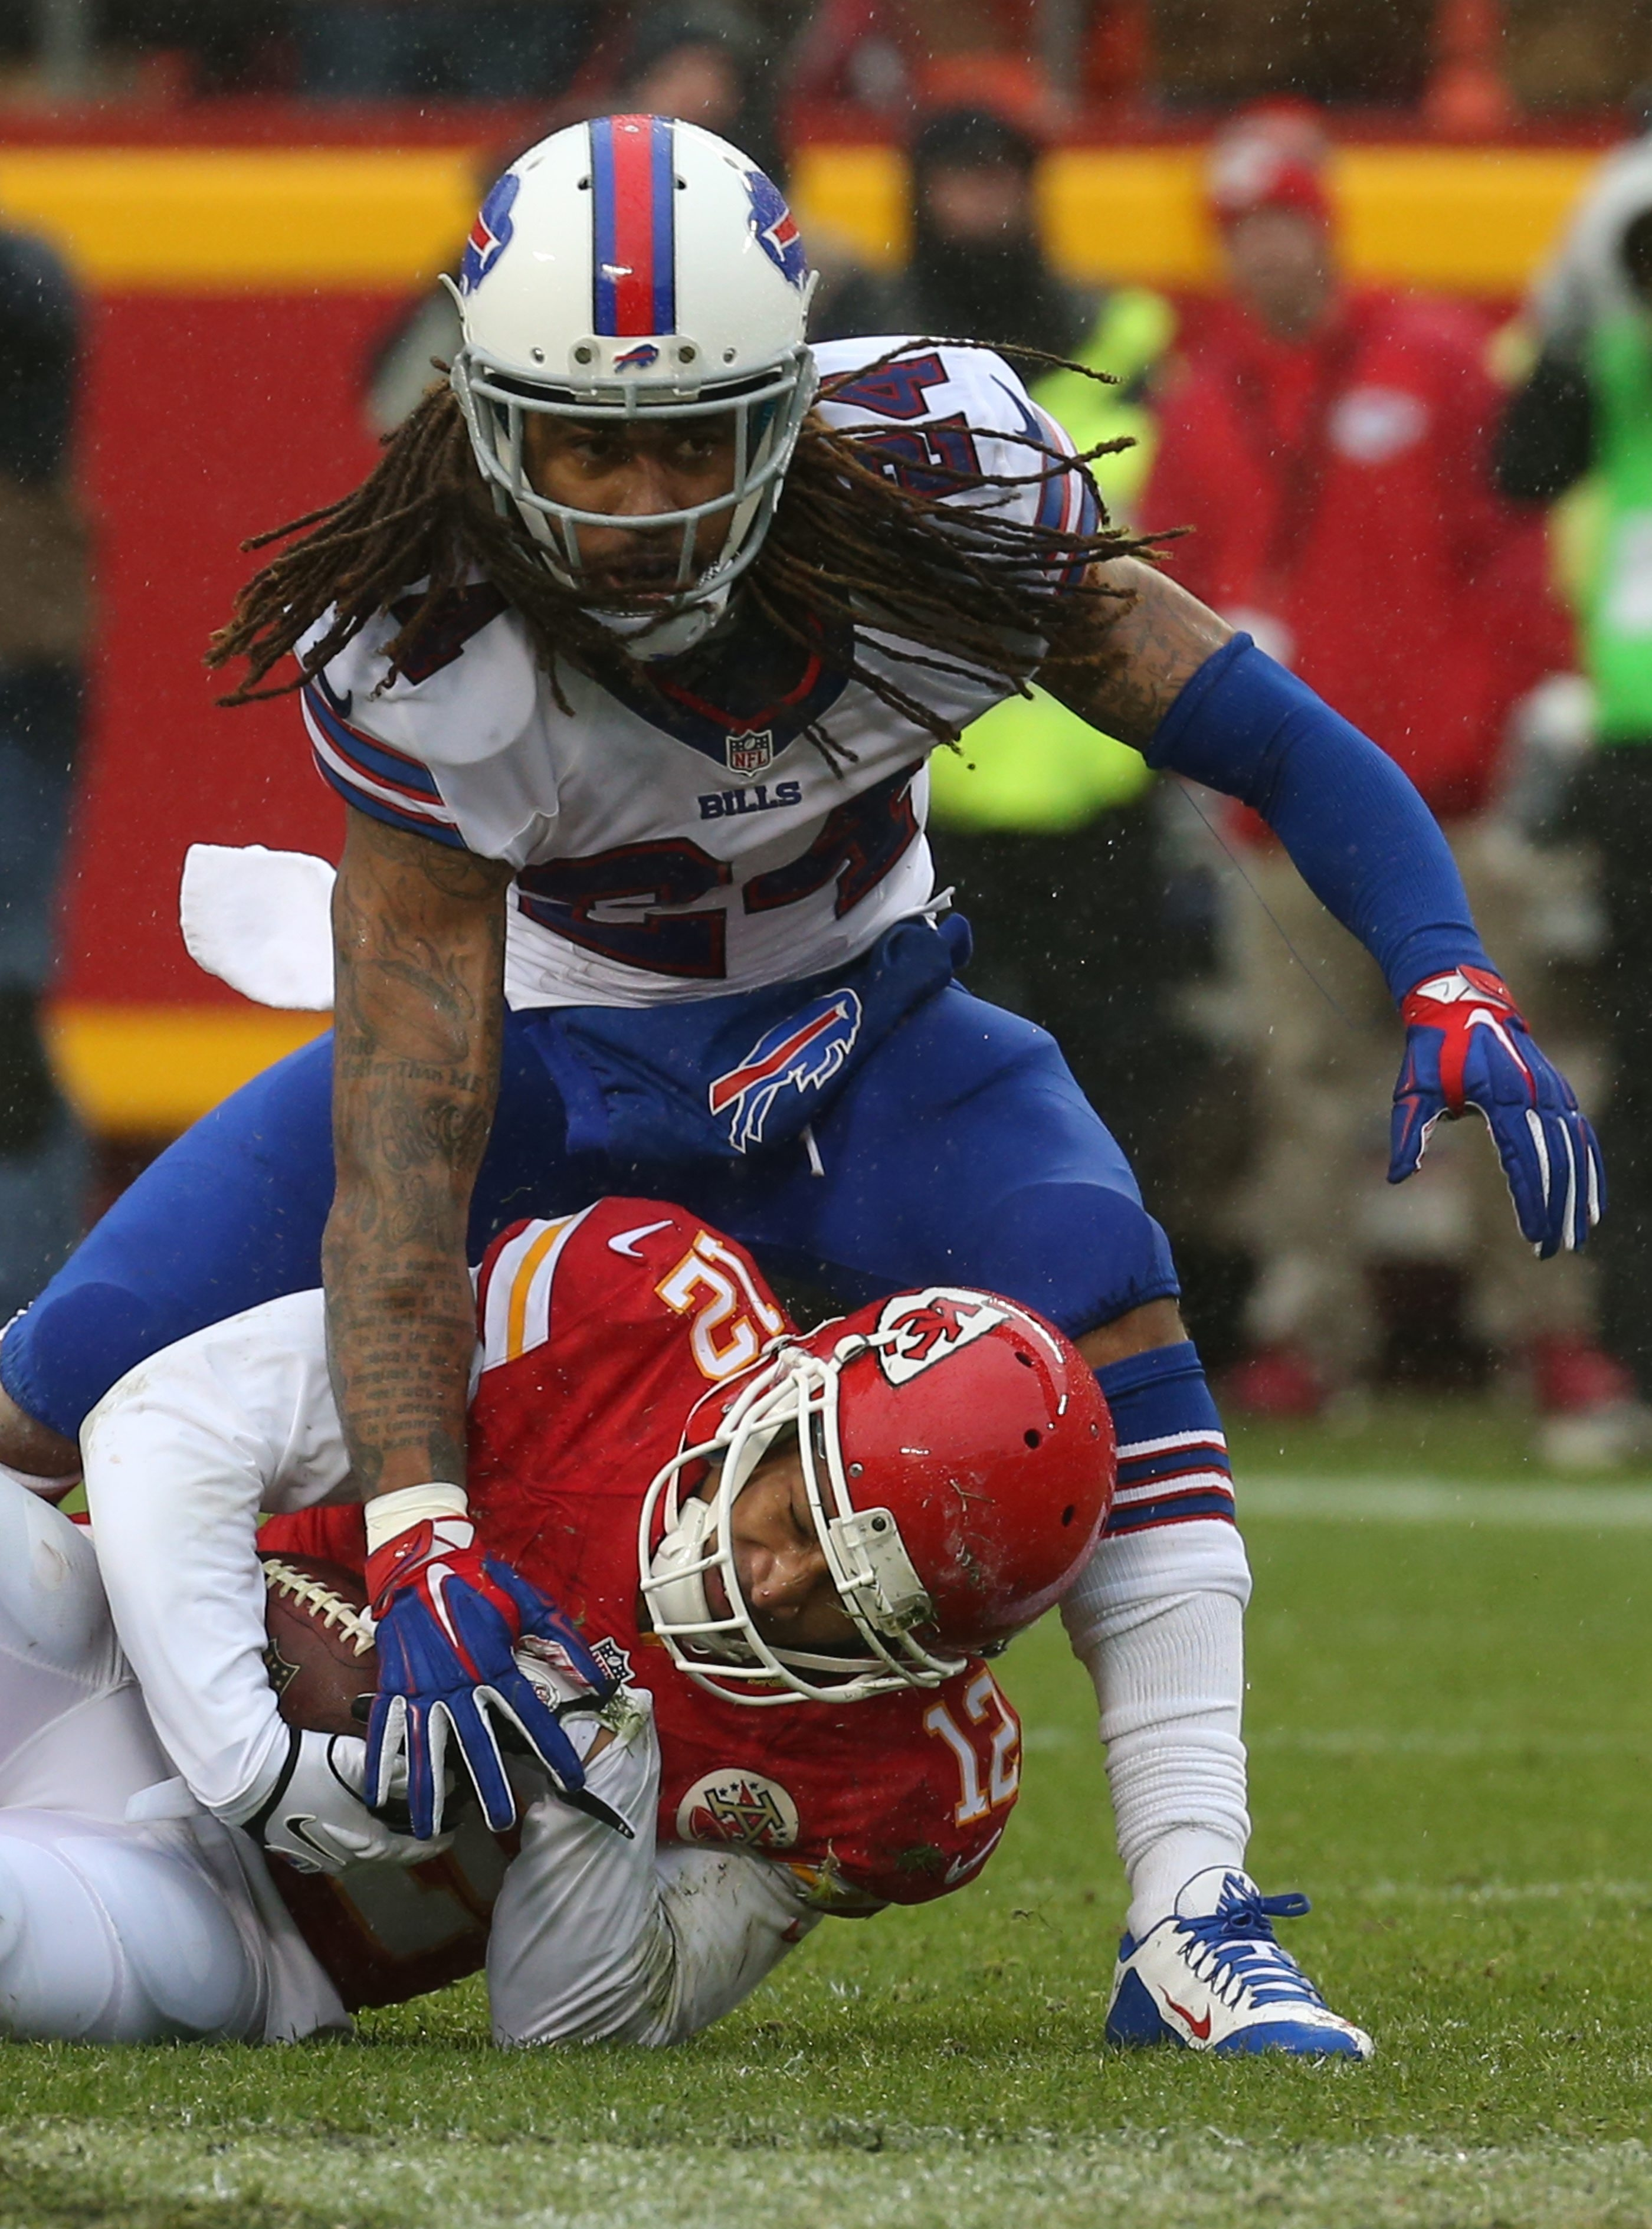 Kansas City Chiefs wide receiver Albert Wilson (12) beats Buffalo Bills cornerback Stephon Gilmore (24) for a catch for a first down in the second quarter at Arrowhead Stadium in Kansas City, Mo. on Sunday, Nov. 29, 2015.  (James P. McCoy/ Buffalo News)